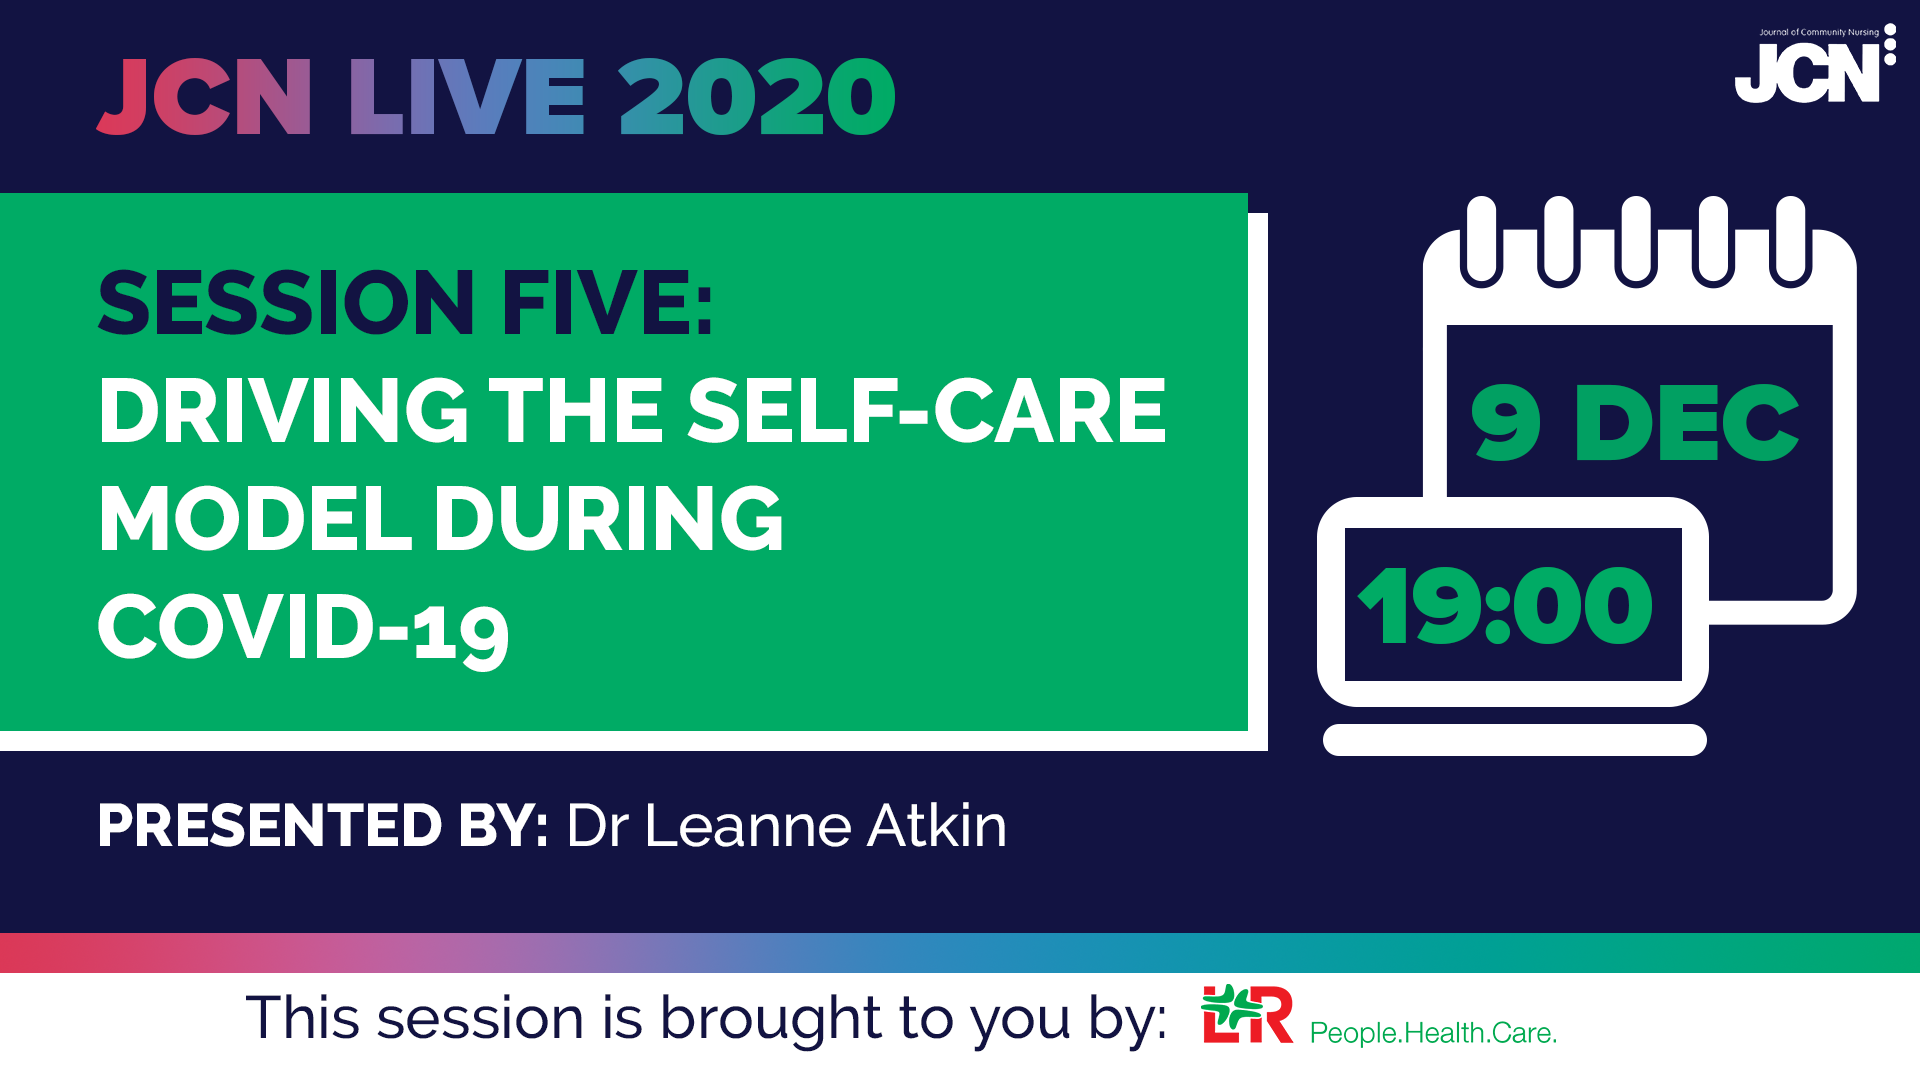 JCN Live 2020: Driving the self-care model during Covid-19